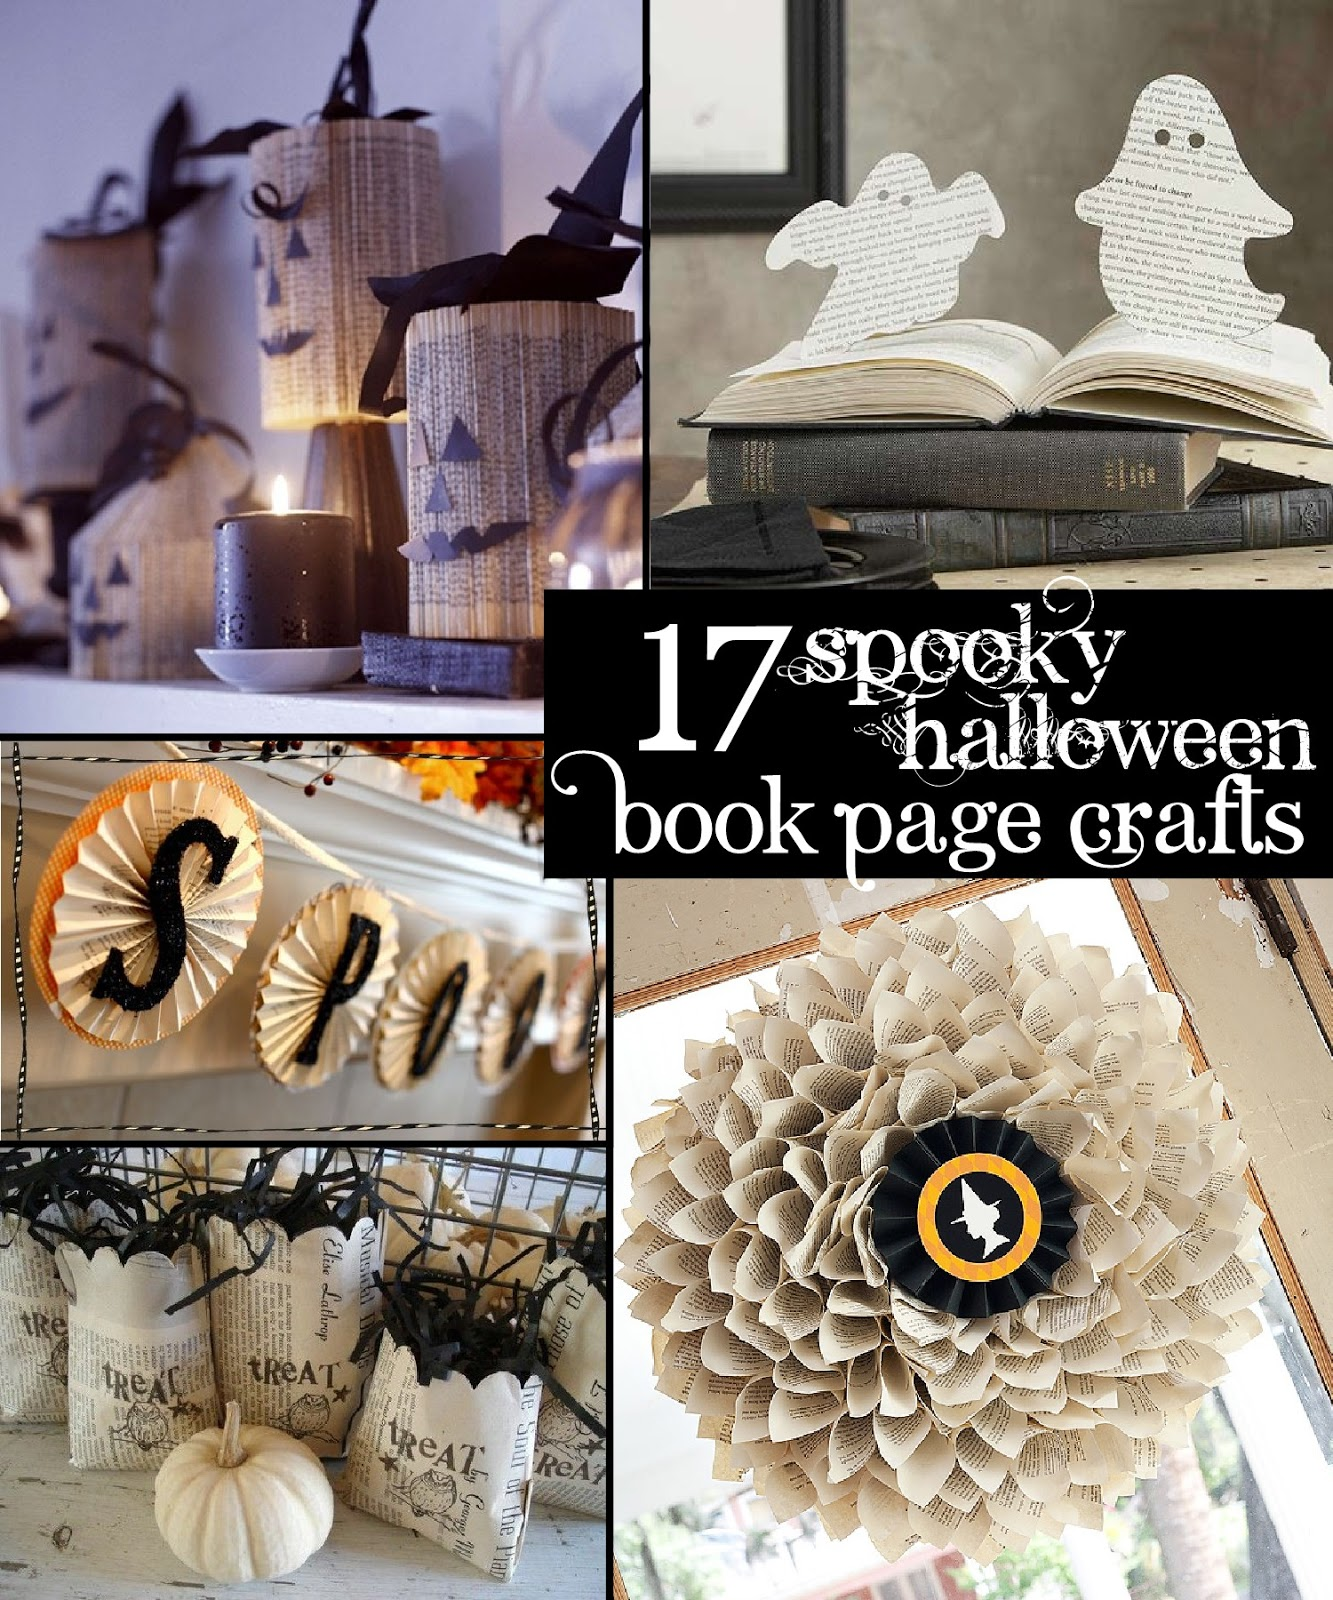 The Scrap Shoppe Book Page Halloween Crafts.jpg